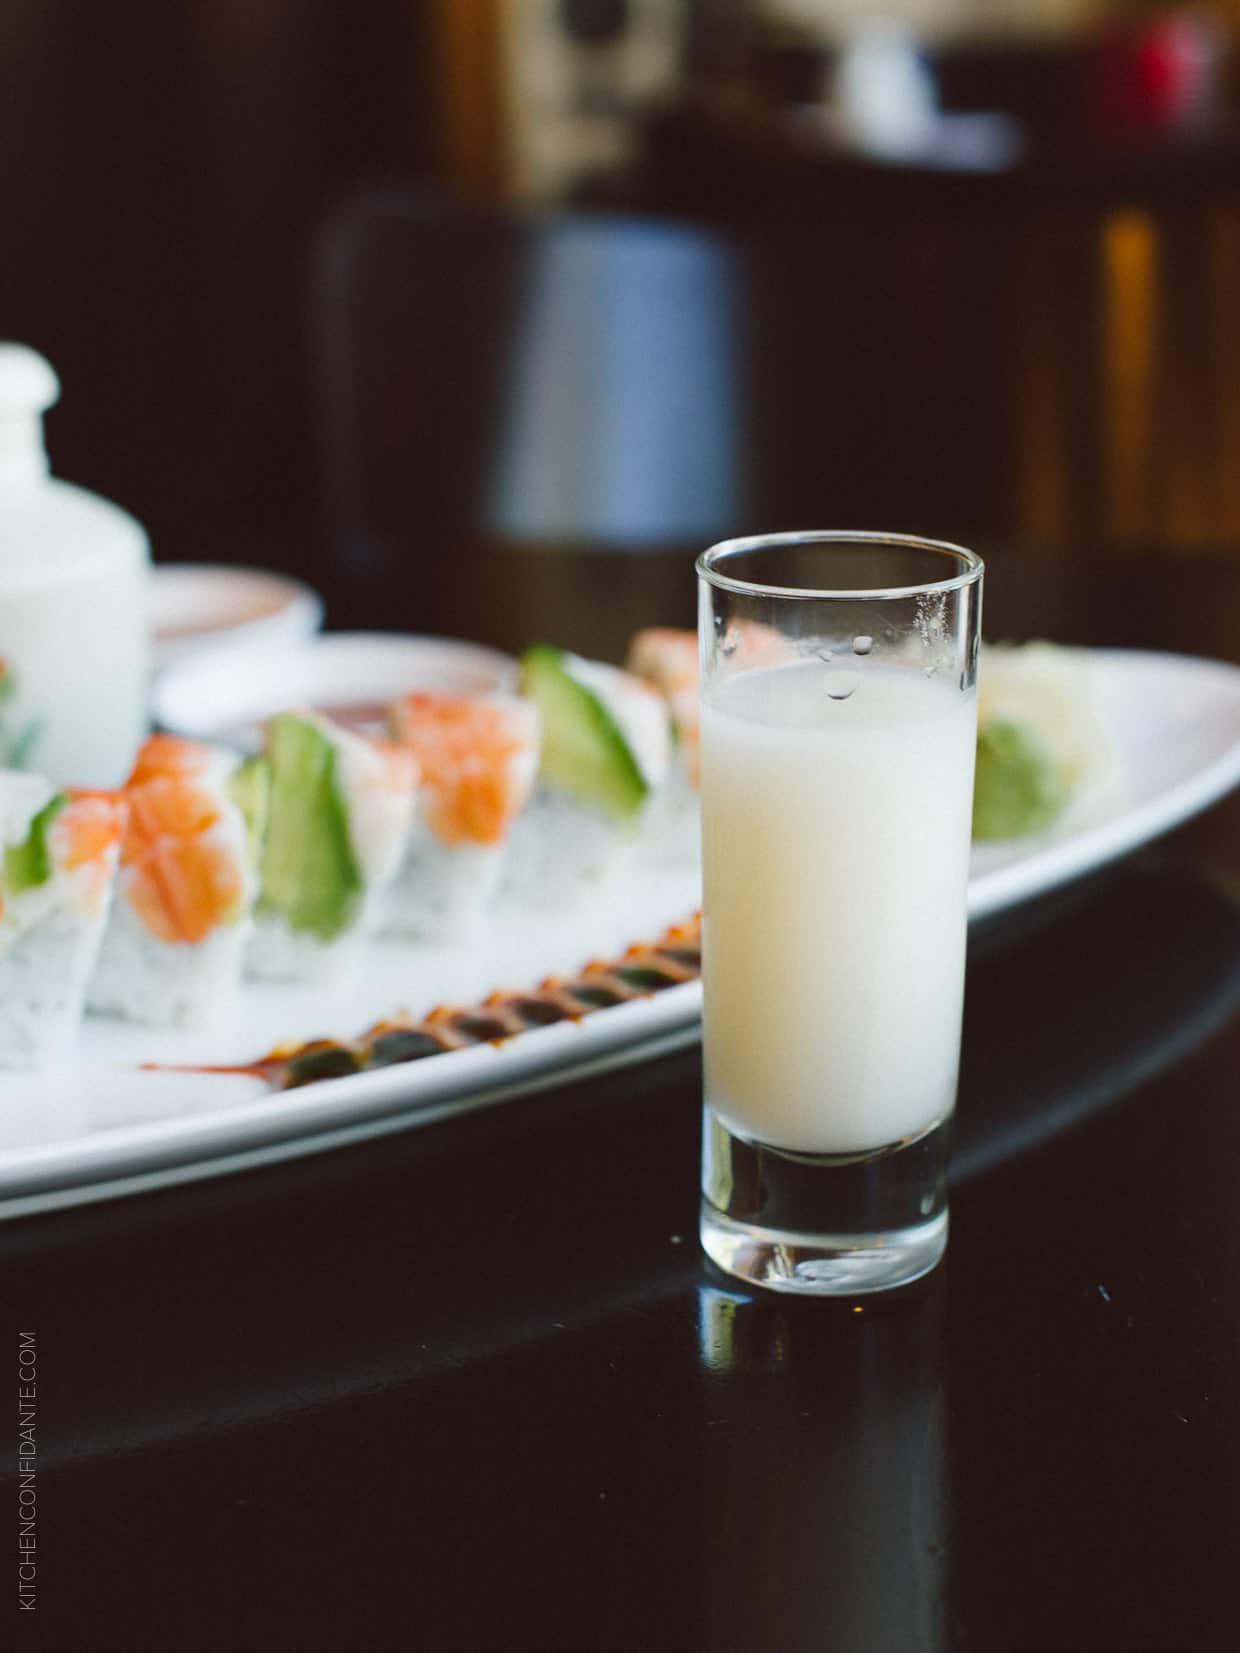 Sho Chiko Bai Nigori, a sake that was surprisingly  round and mellow, with notes of creamy coconut and fragrant melon.